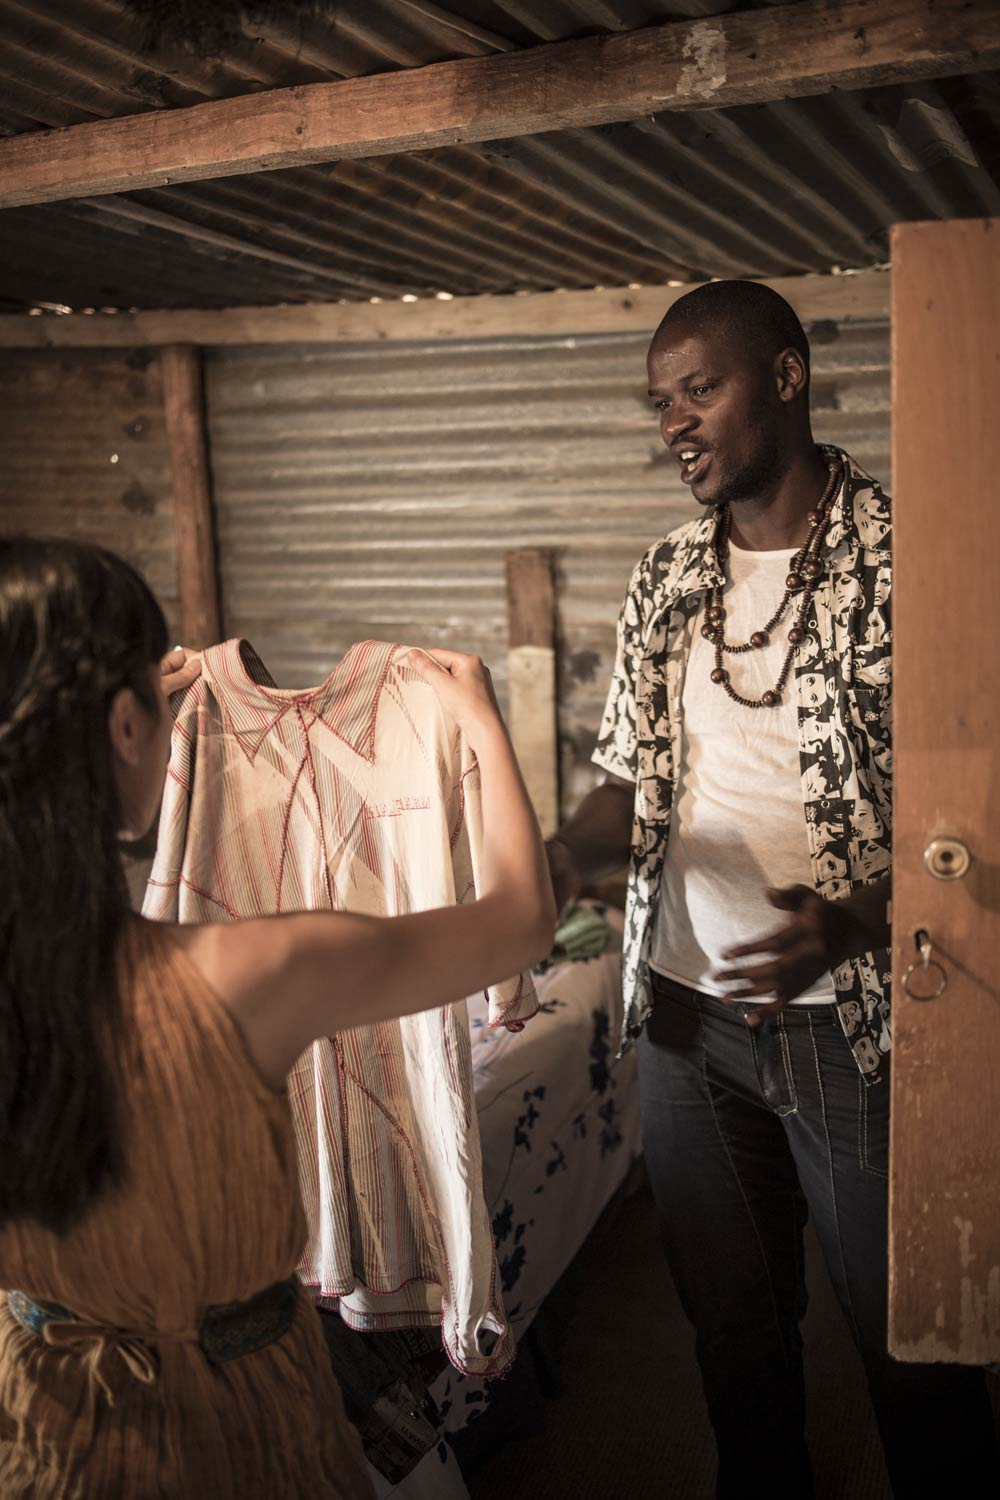 Jenny and Macdee discussing  their past designs and sharing ideas at his home in Orange Farm township. Photo by Chris Saunders.